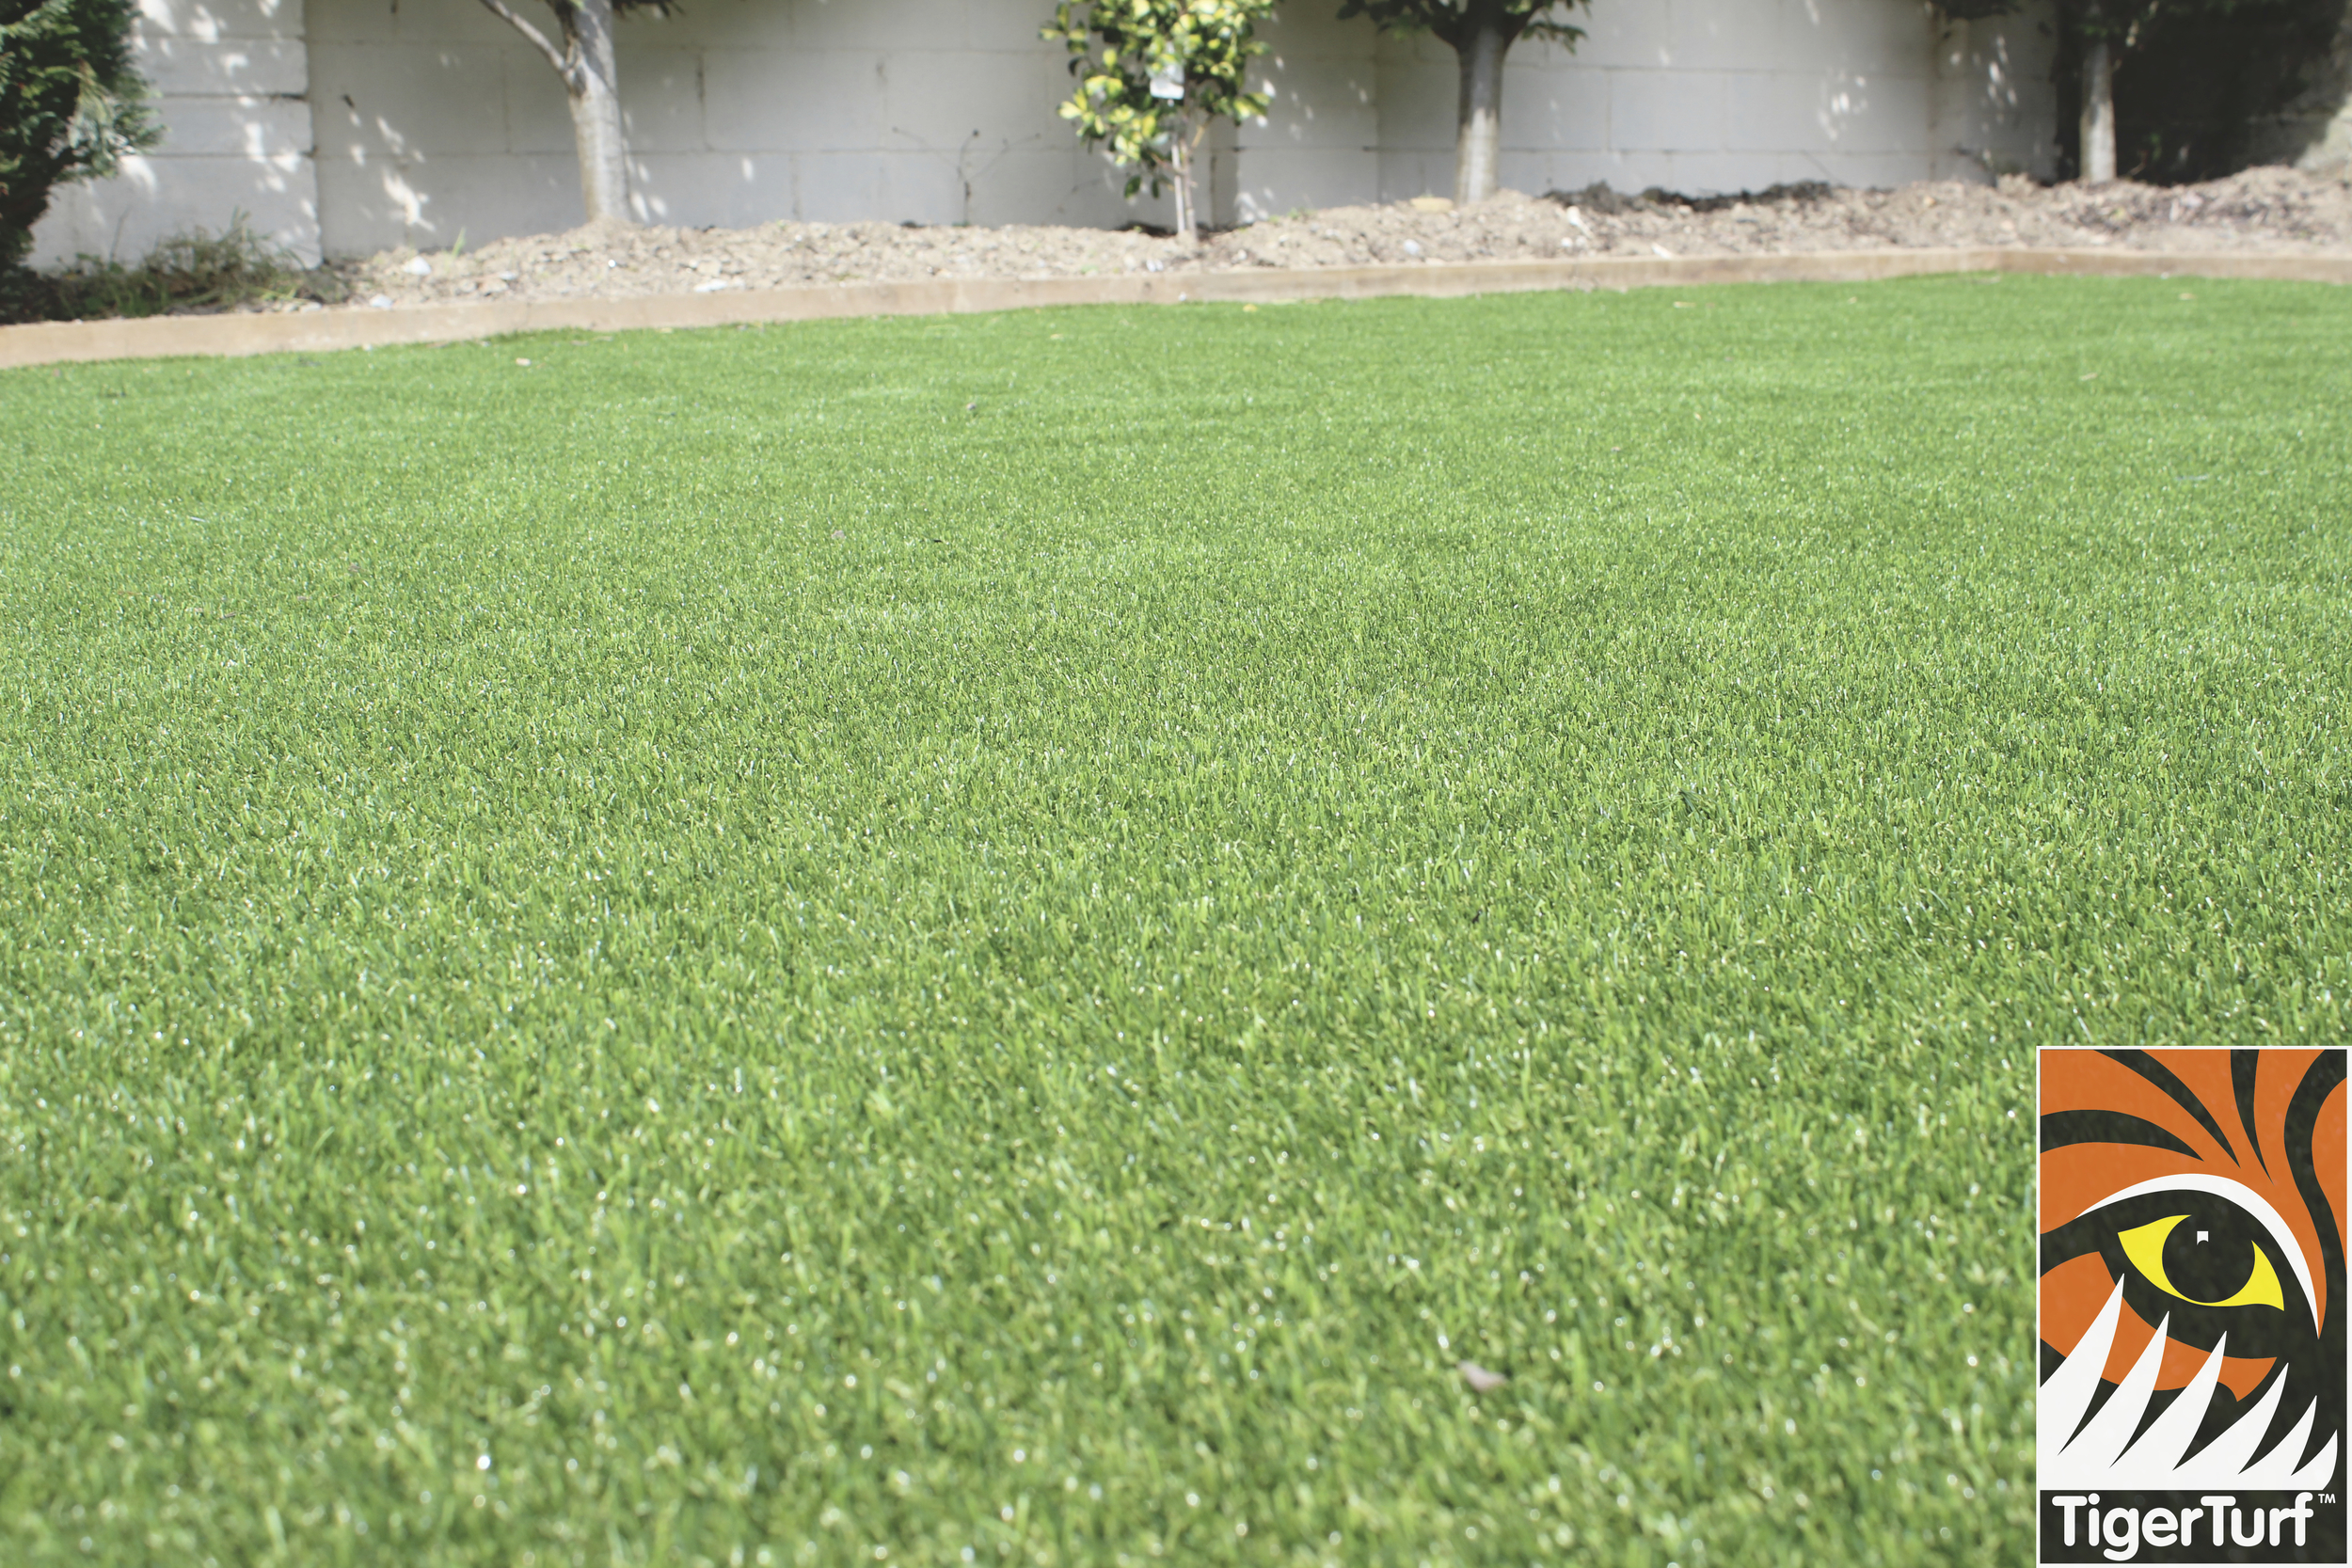 trees and TigerTurf